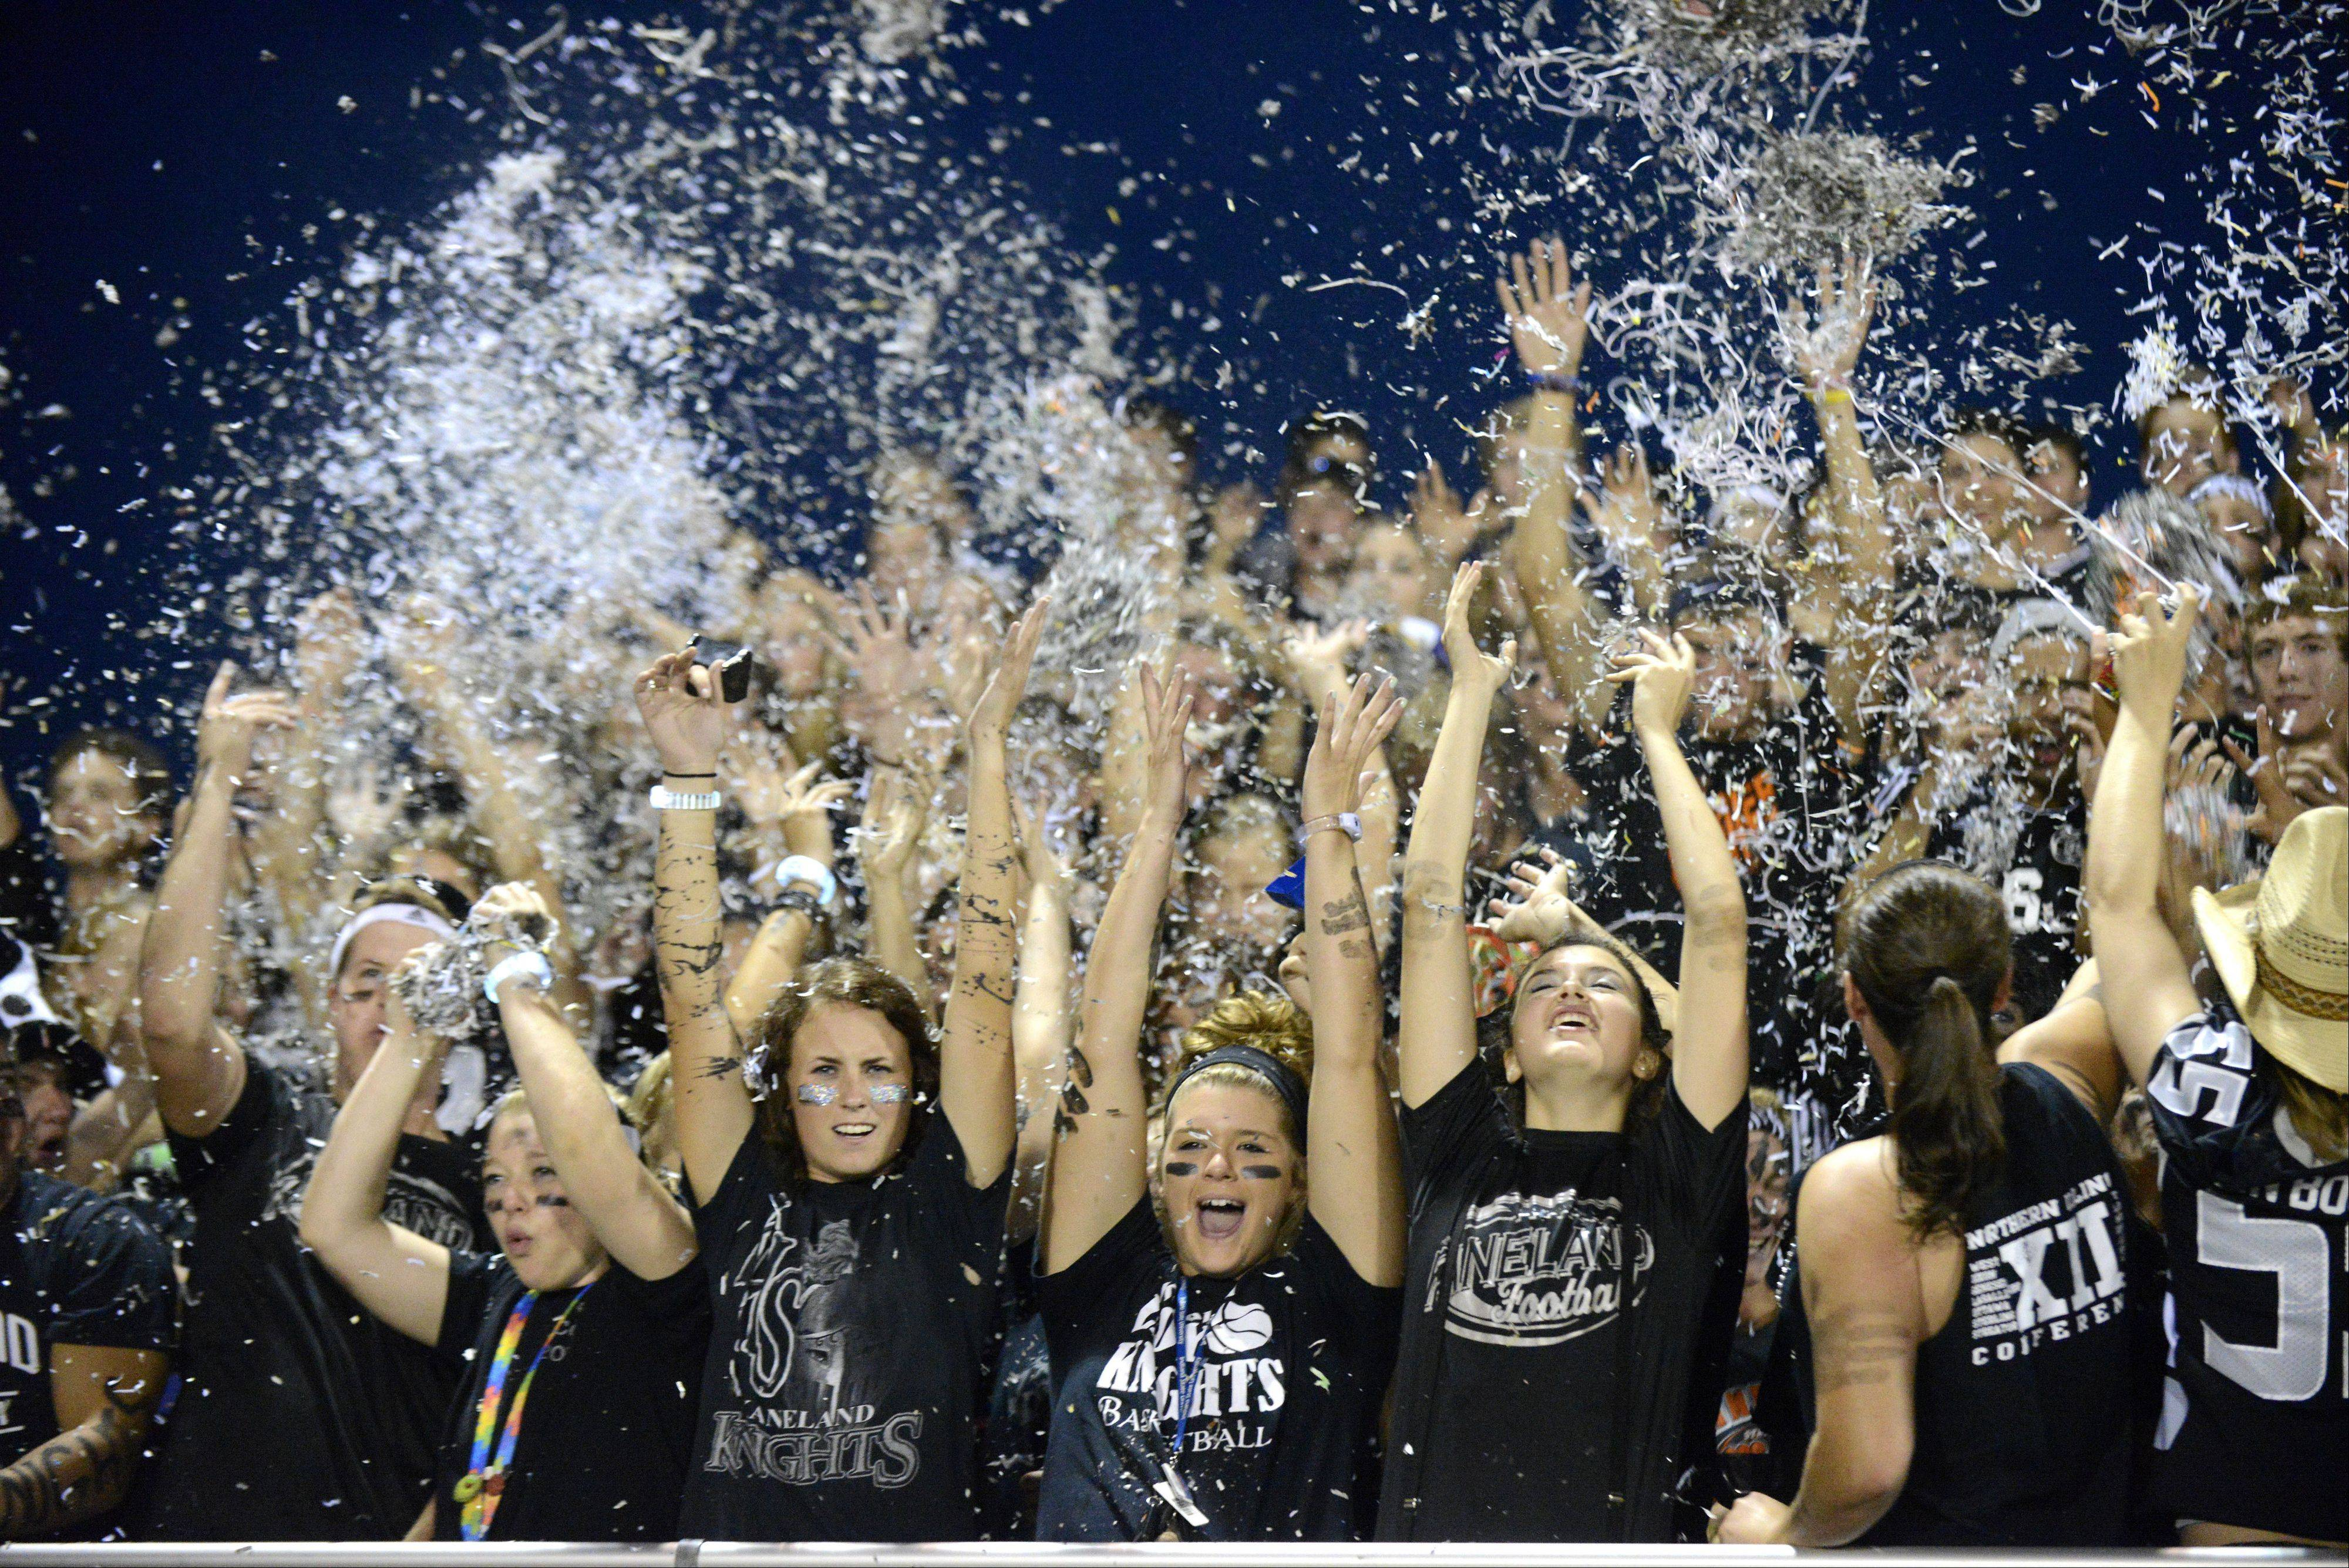 Kaneland fans cheering on their team during Friday's football game against IC Catholic Prep.